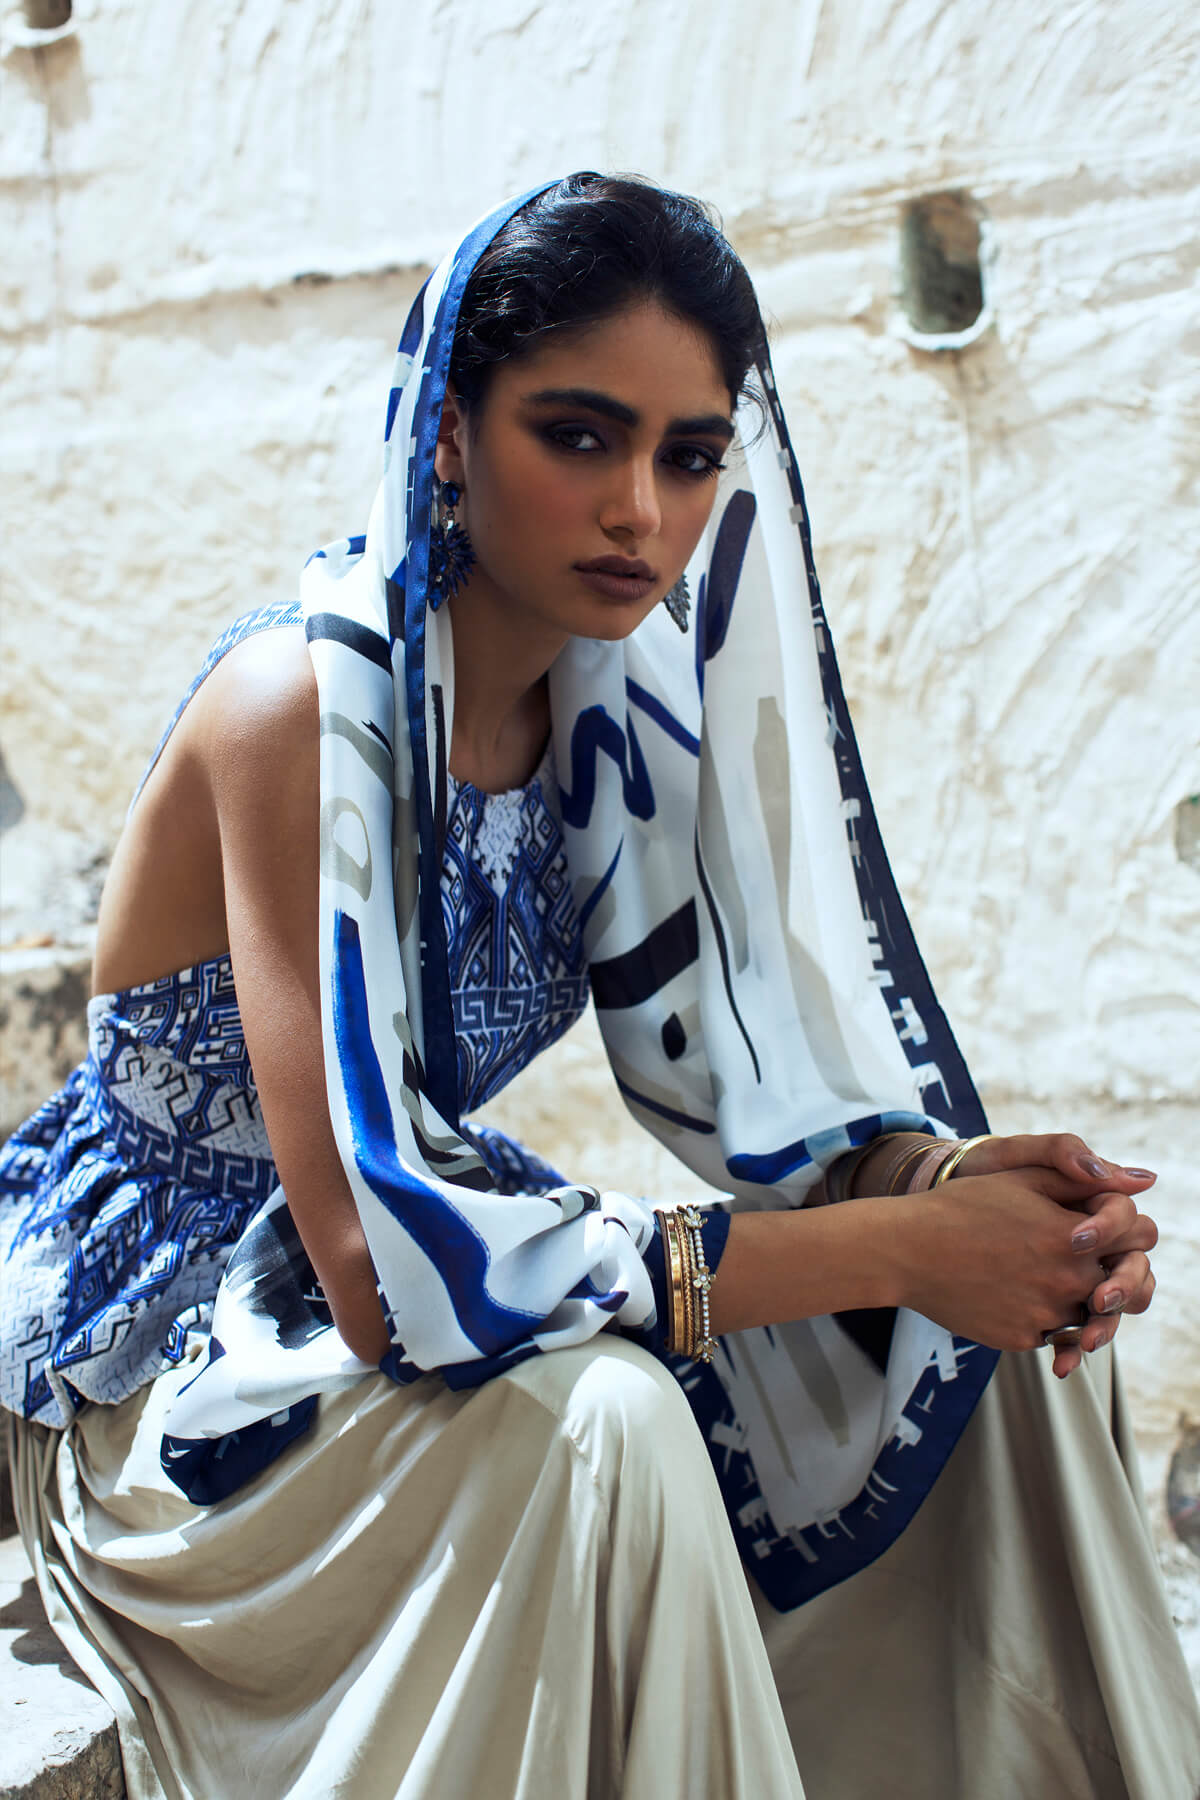 Silk Scarf; Dikla Levsky; Printed Scarf; Foulard Soie; Long Scarf; Made In Italy; Luxury Accessories; Designer Scarf; Ethnic Scarf; Oblong shawl; light silk scarf; blue, indigo scarf, blue and white silk scarf. modern scarf